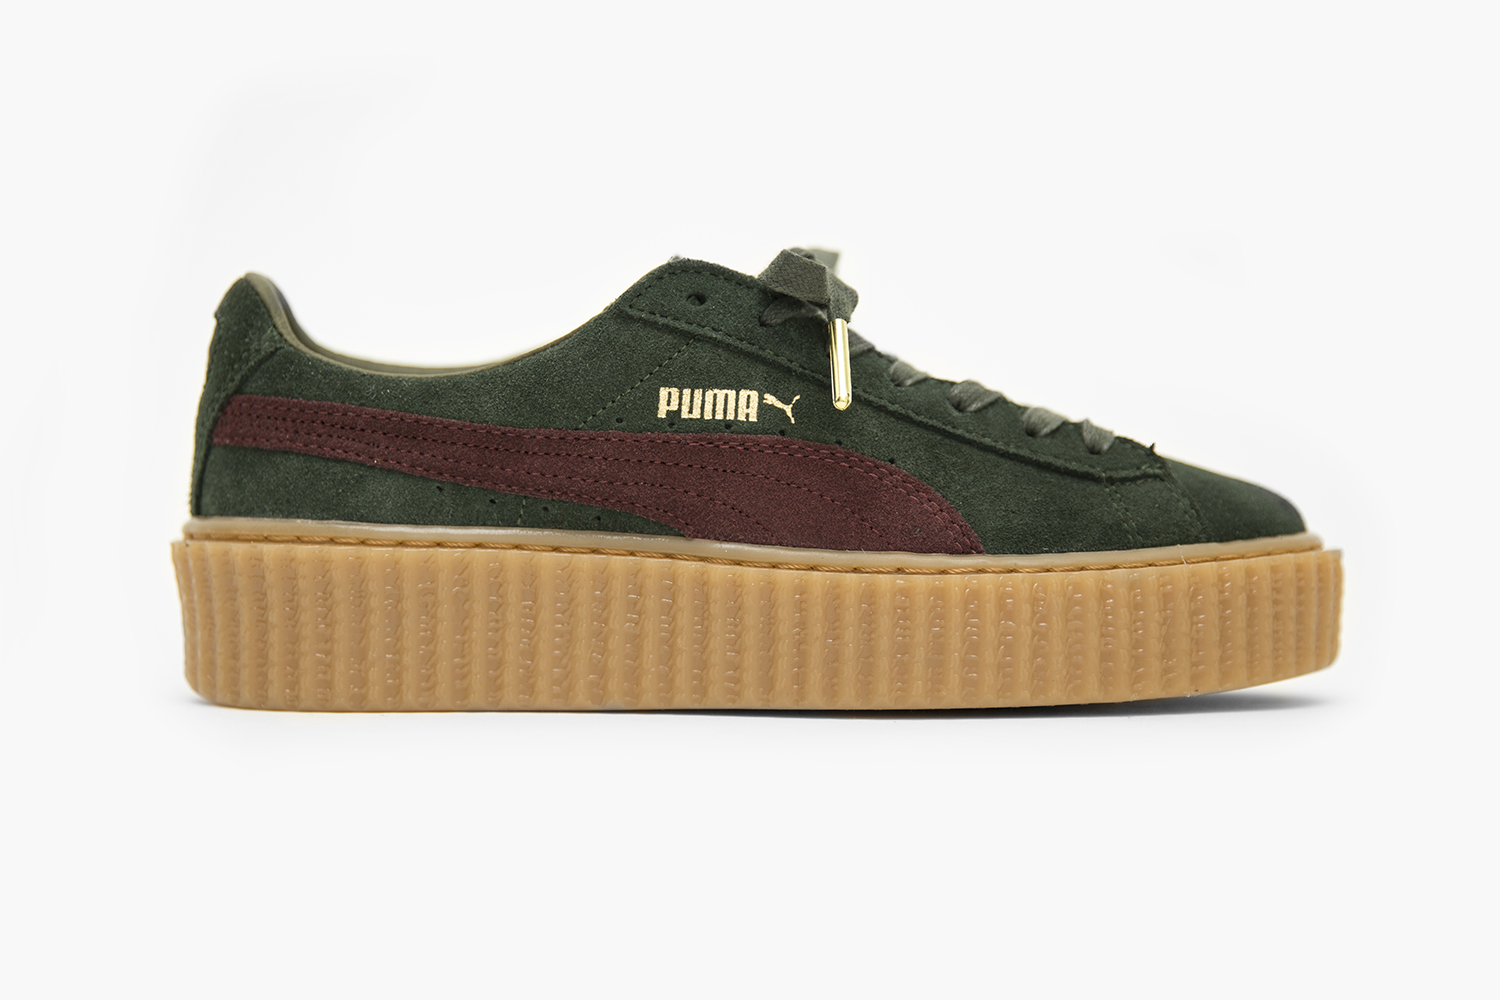 puma creeper available